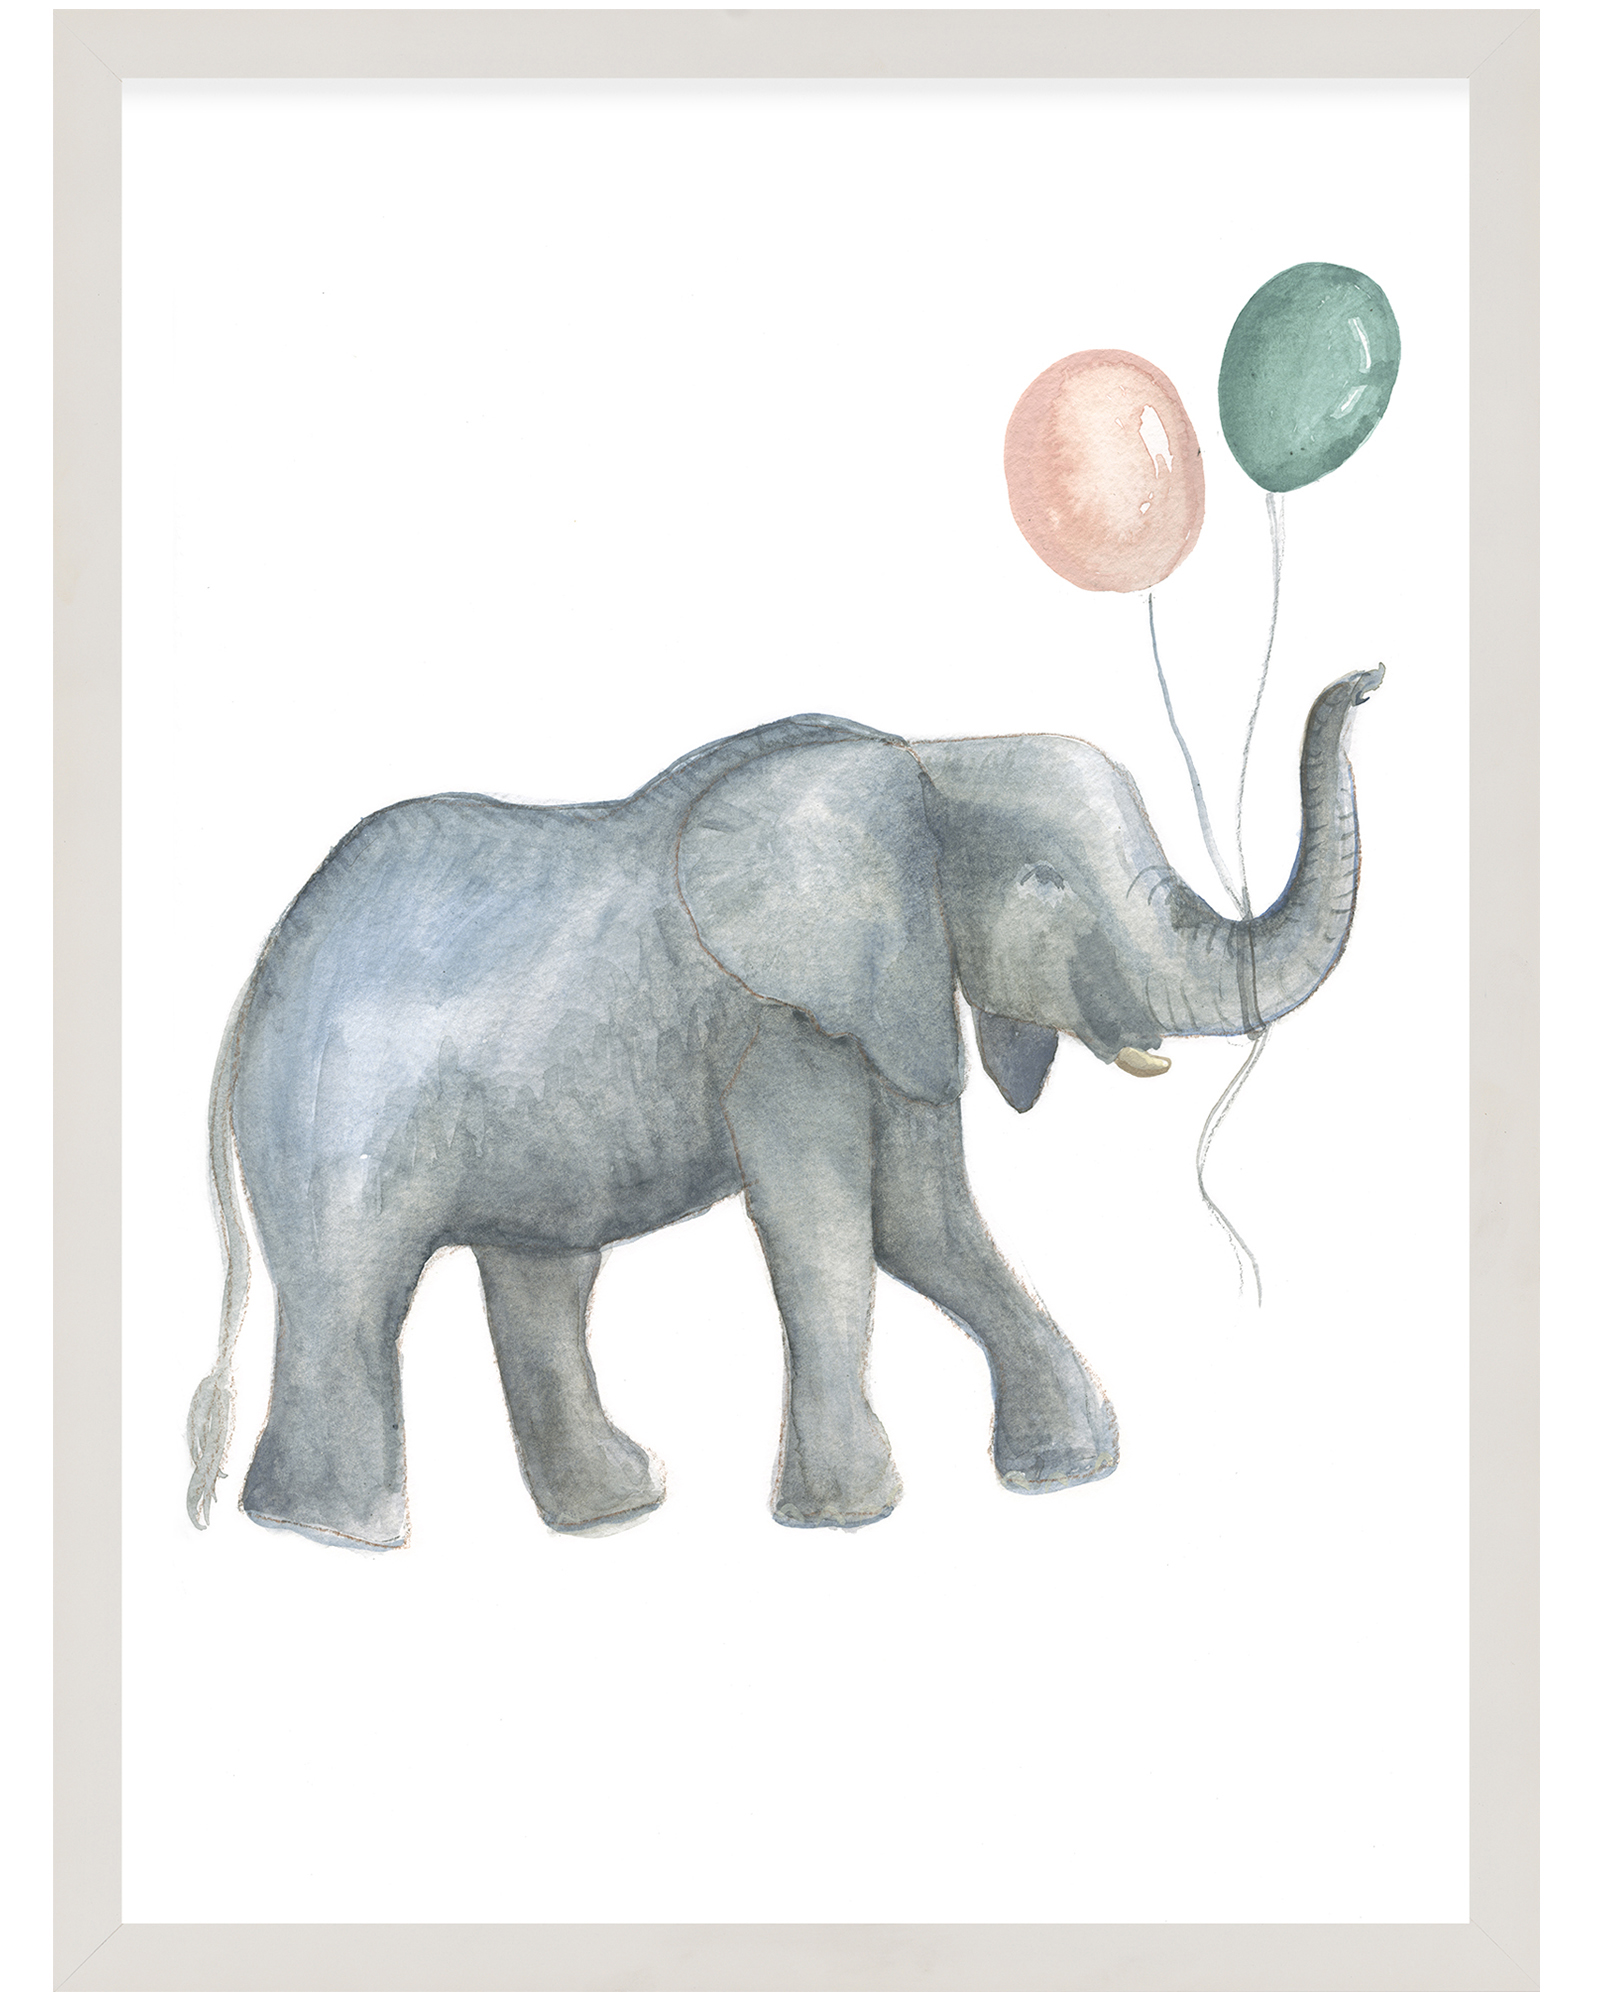 """Party Animals - Elephant"" by Fours Are Yellow,"